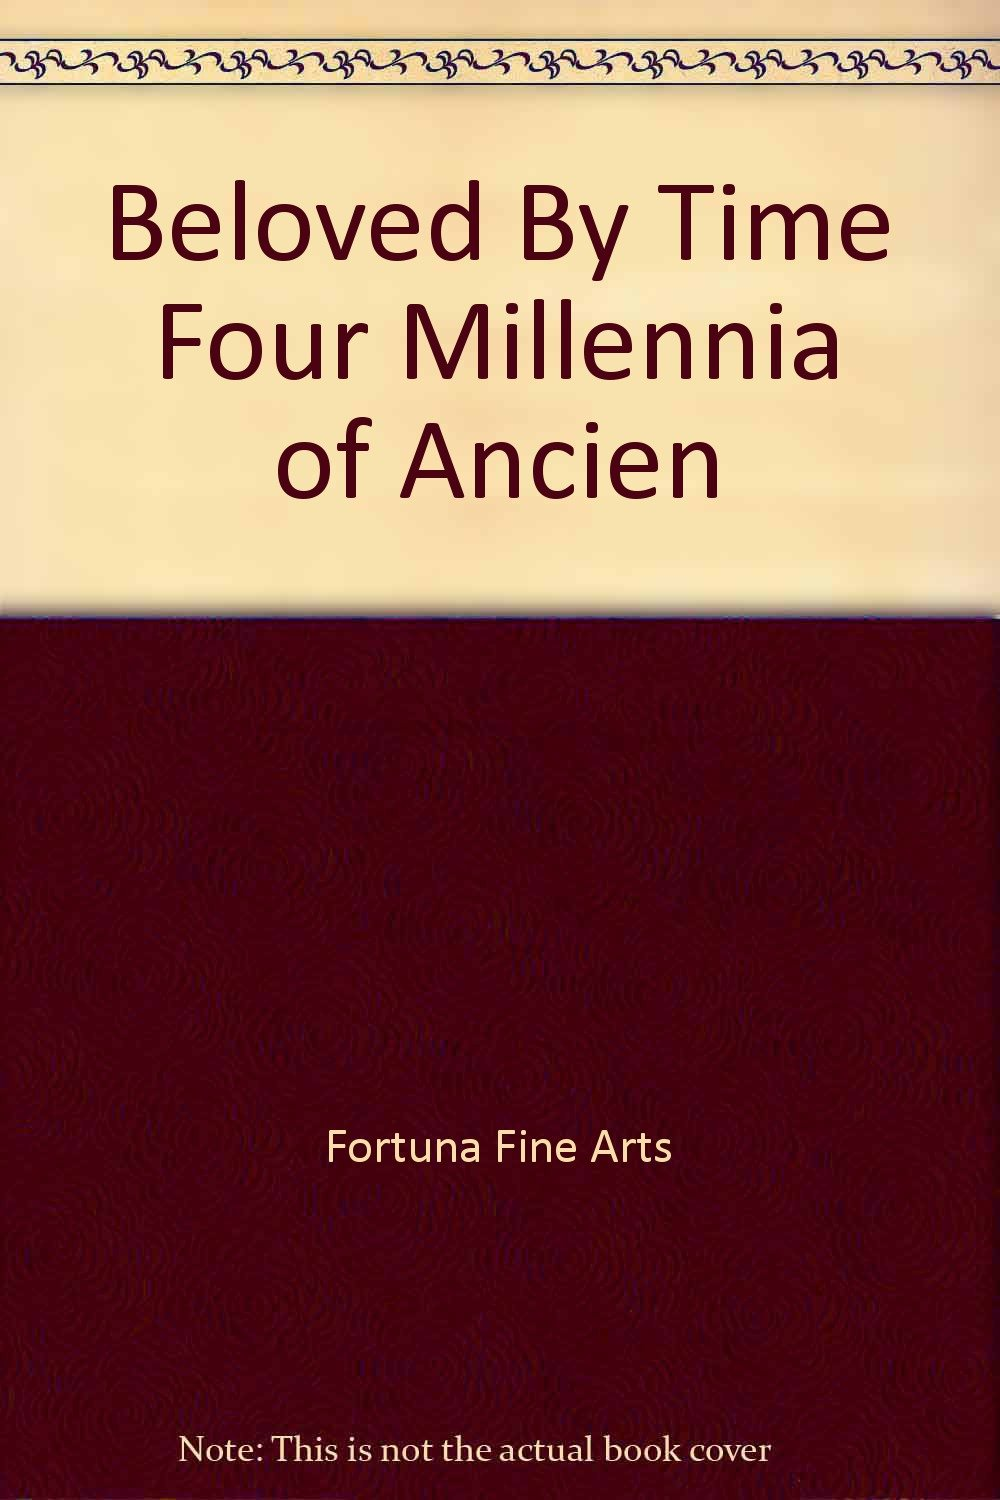 Download Beloved By Time Four Millennia of Ancien pdf